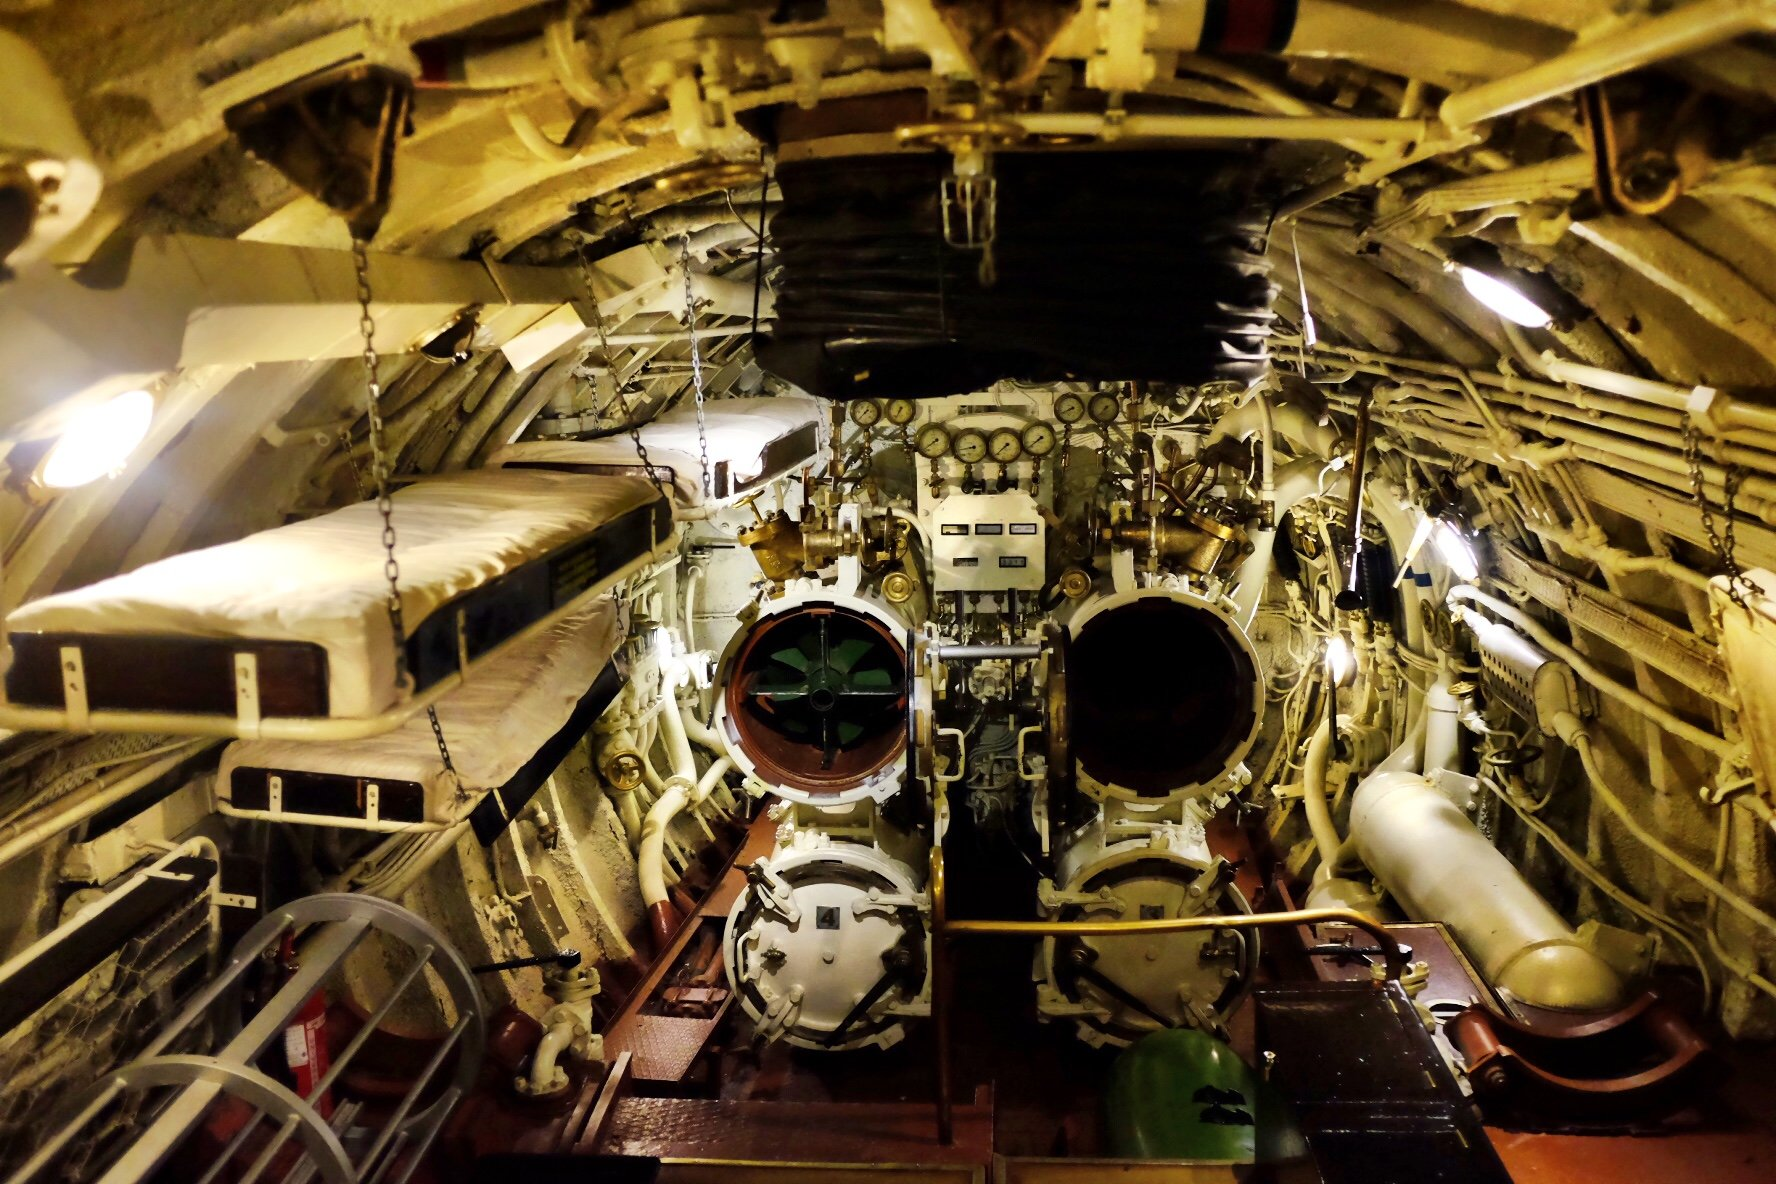 Inside the submarine which is exhibited at the Seaplane Museum in Tallinn. You see the torpedo tubes and some bunk beds